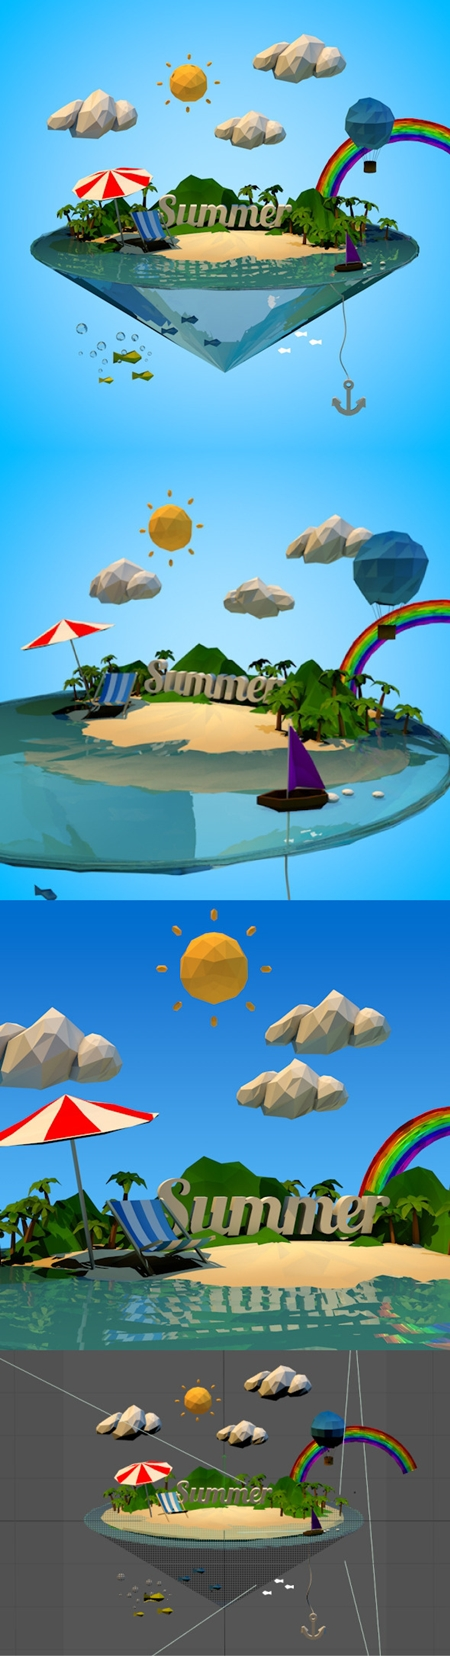 3D Ocean Abstract summer vacation with Low-poly style